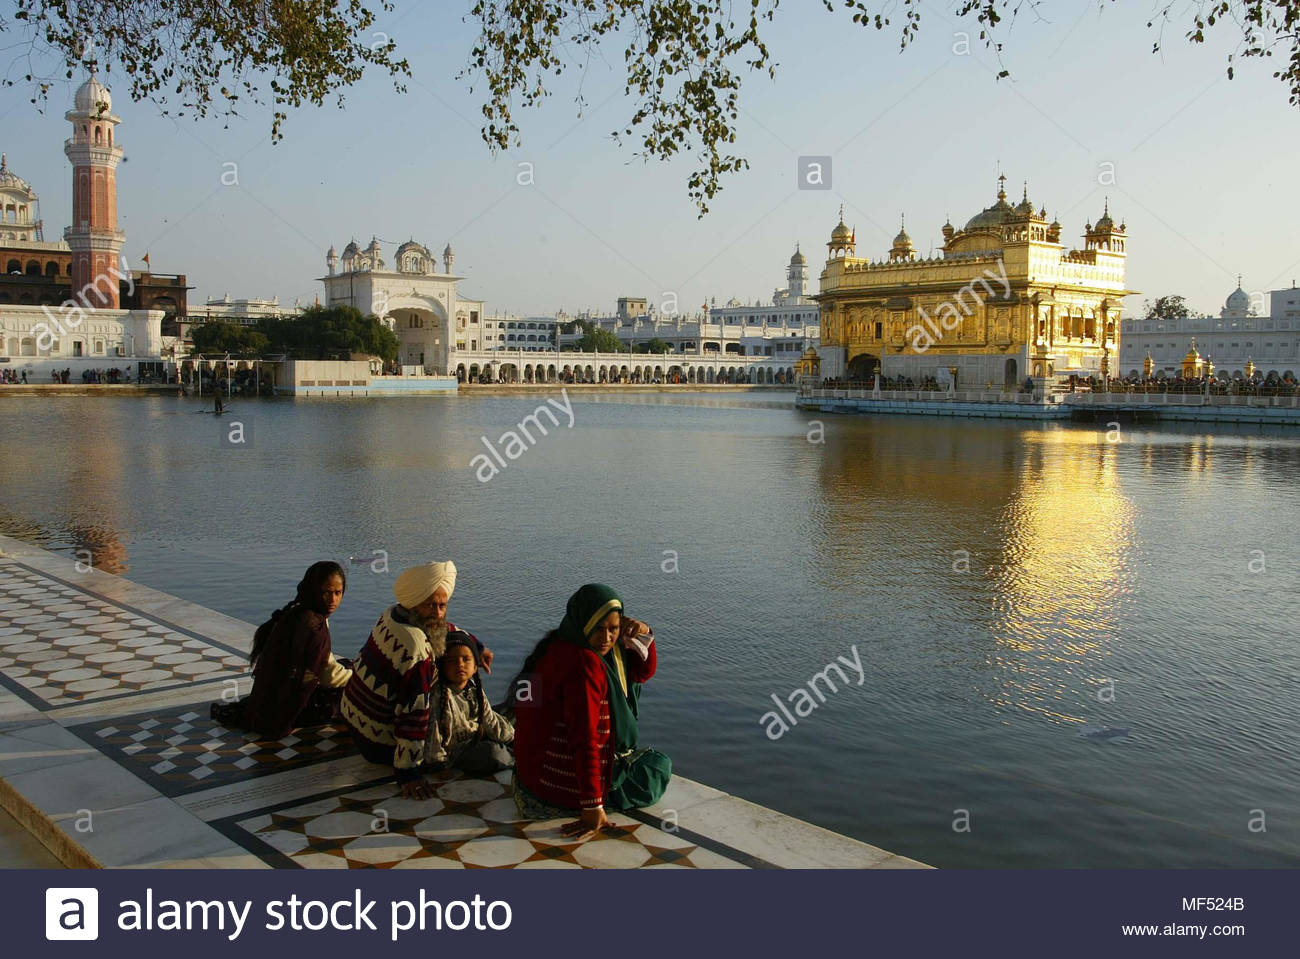 File photo dated 01/02/04 of pilgrims at the edge of the moat surrounding the Golden Temple in Amritsar, India. The Foreign Office's top official has apologised after calling the revered Sikh temple a mosque. - Stock Image